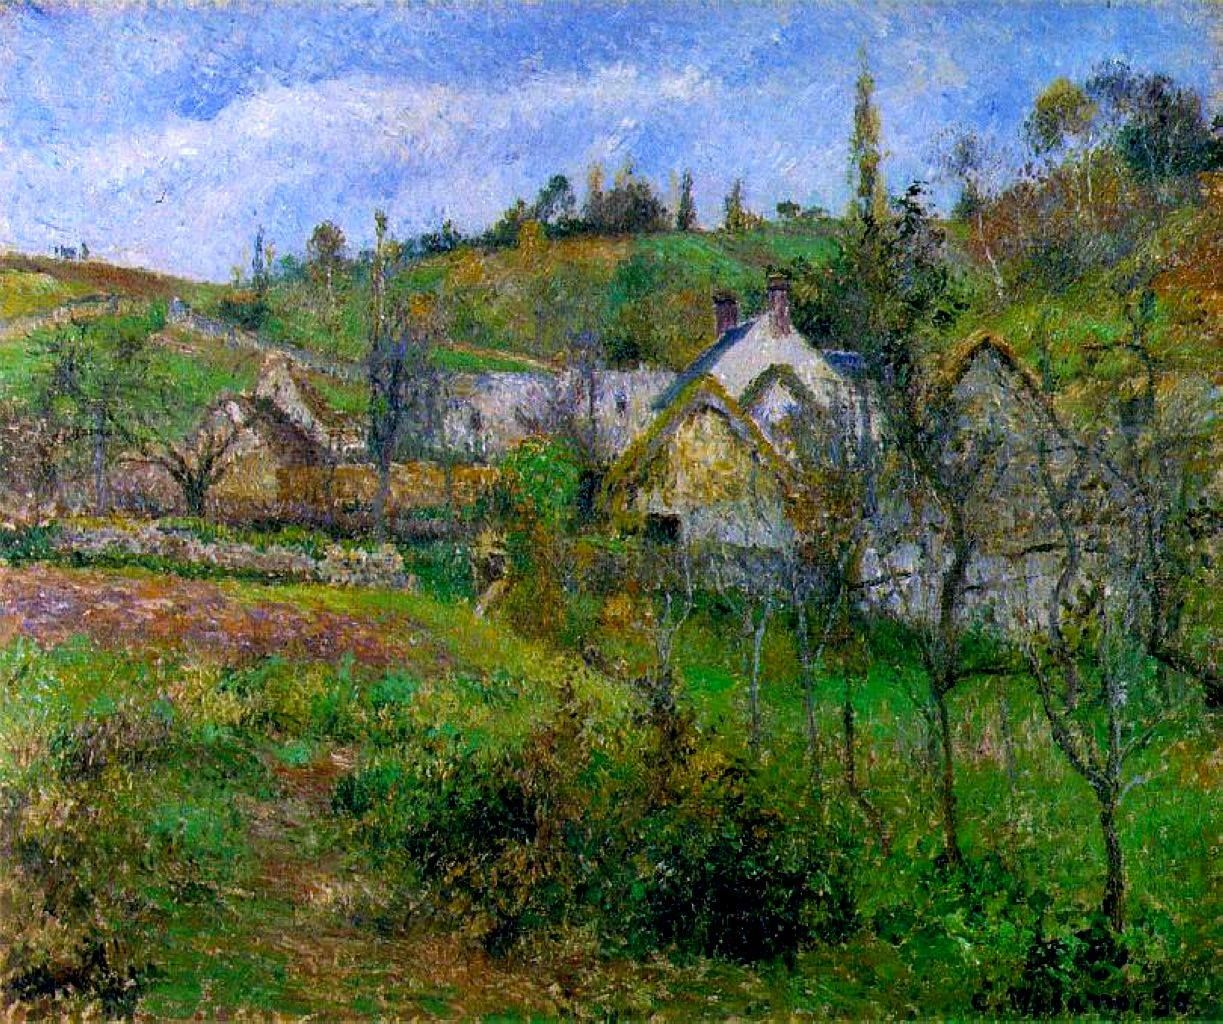 Camille Pissarro (French, Impressionism, 1830-1903): Le Valhermeil, near Pontoise; 1880. Oil on canvas. Private Collection.